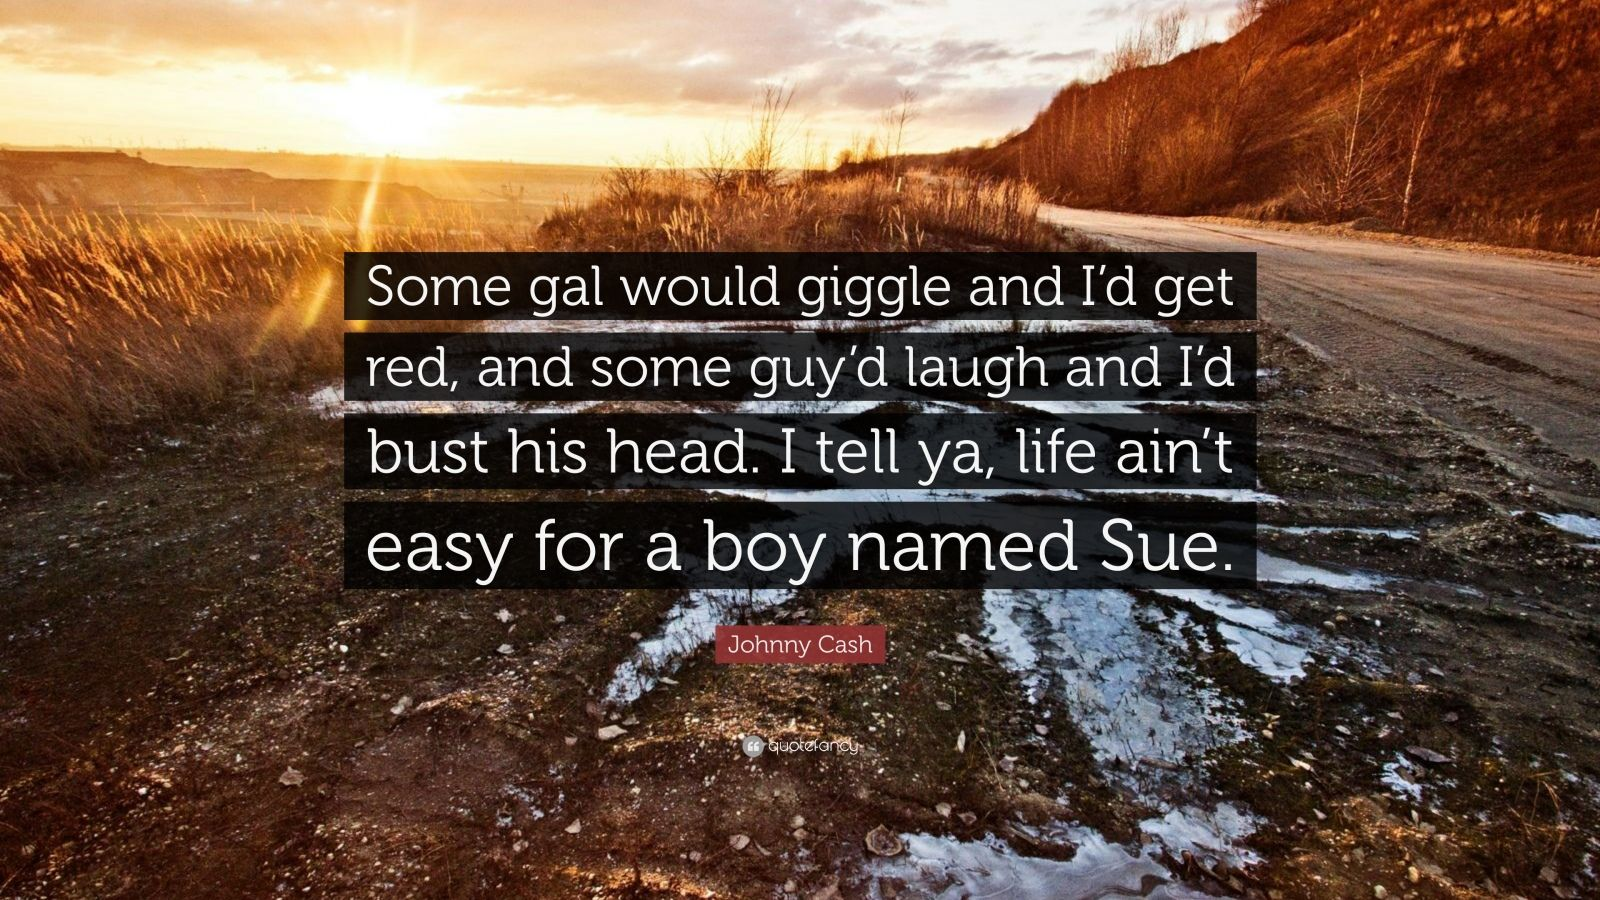 "Johnny Cash Quote: ""Some gal would giggle and I'd get red, and some guy'd laugh and I'd bust his head. I tell ya, life ain't easy for a boy named Sue."""